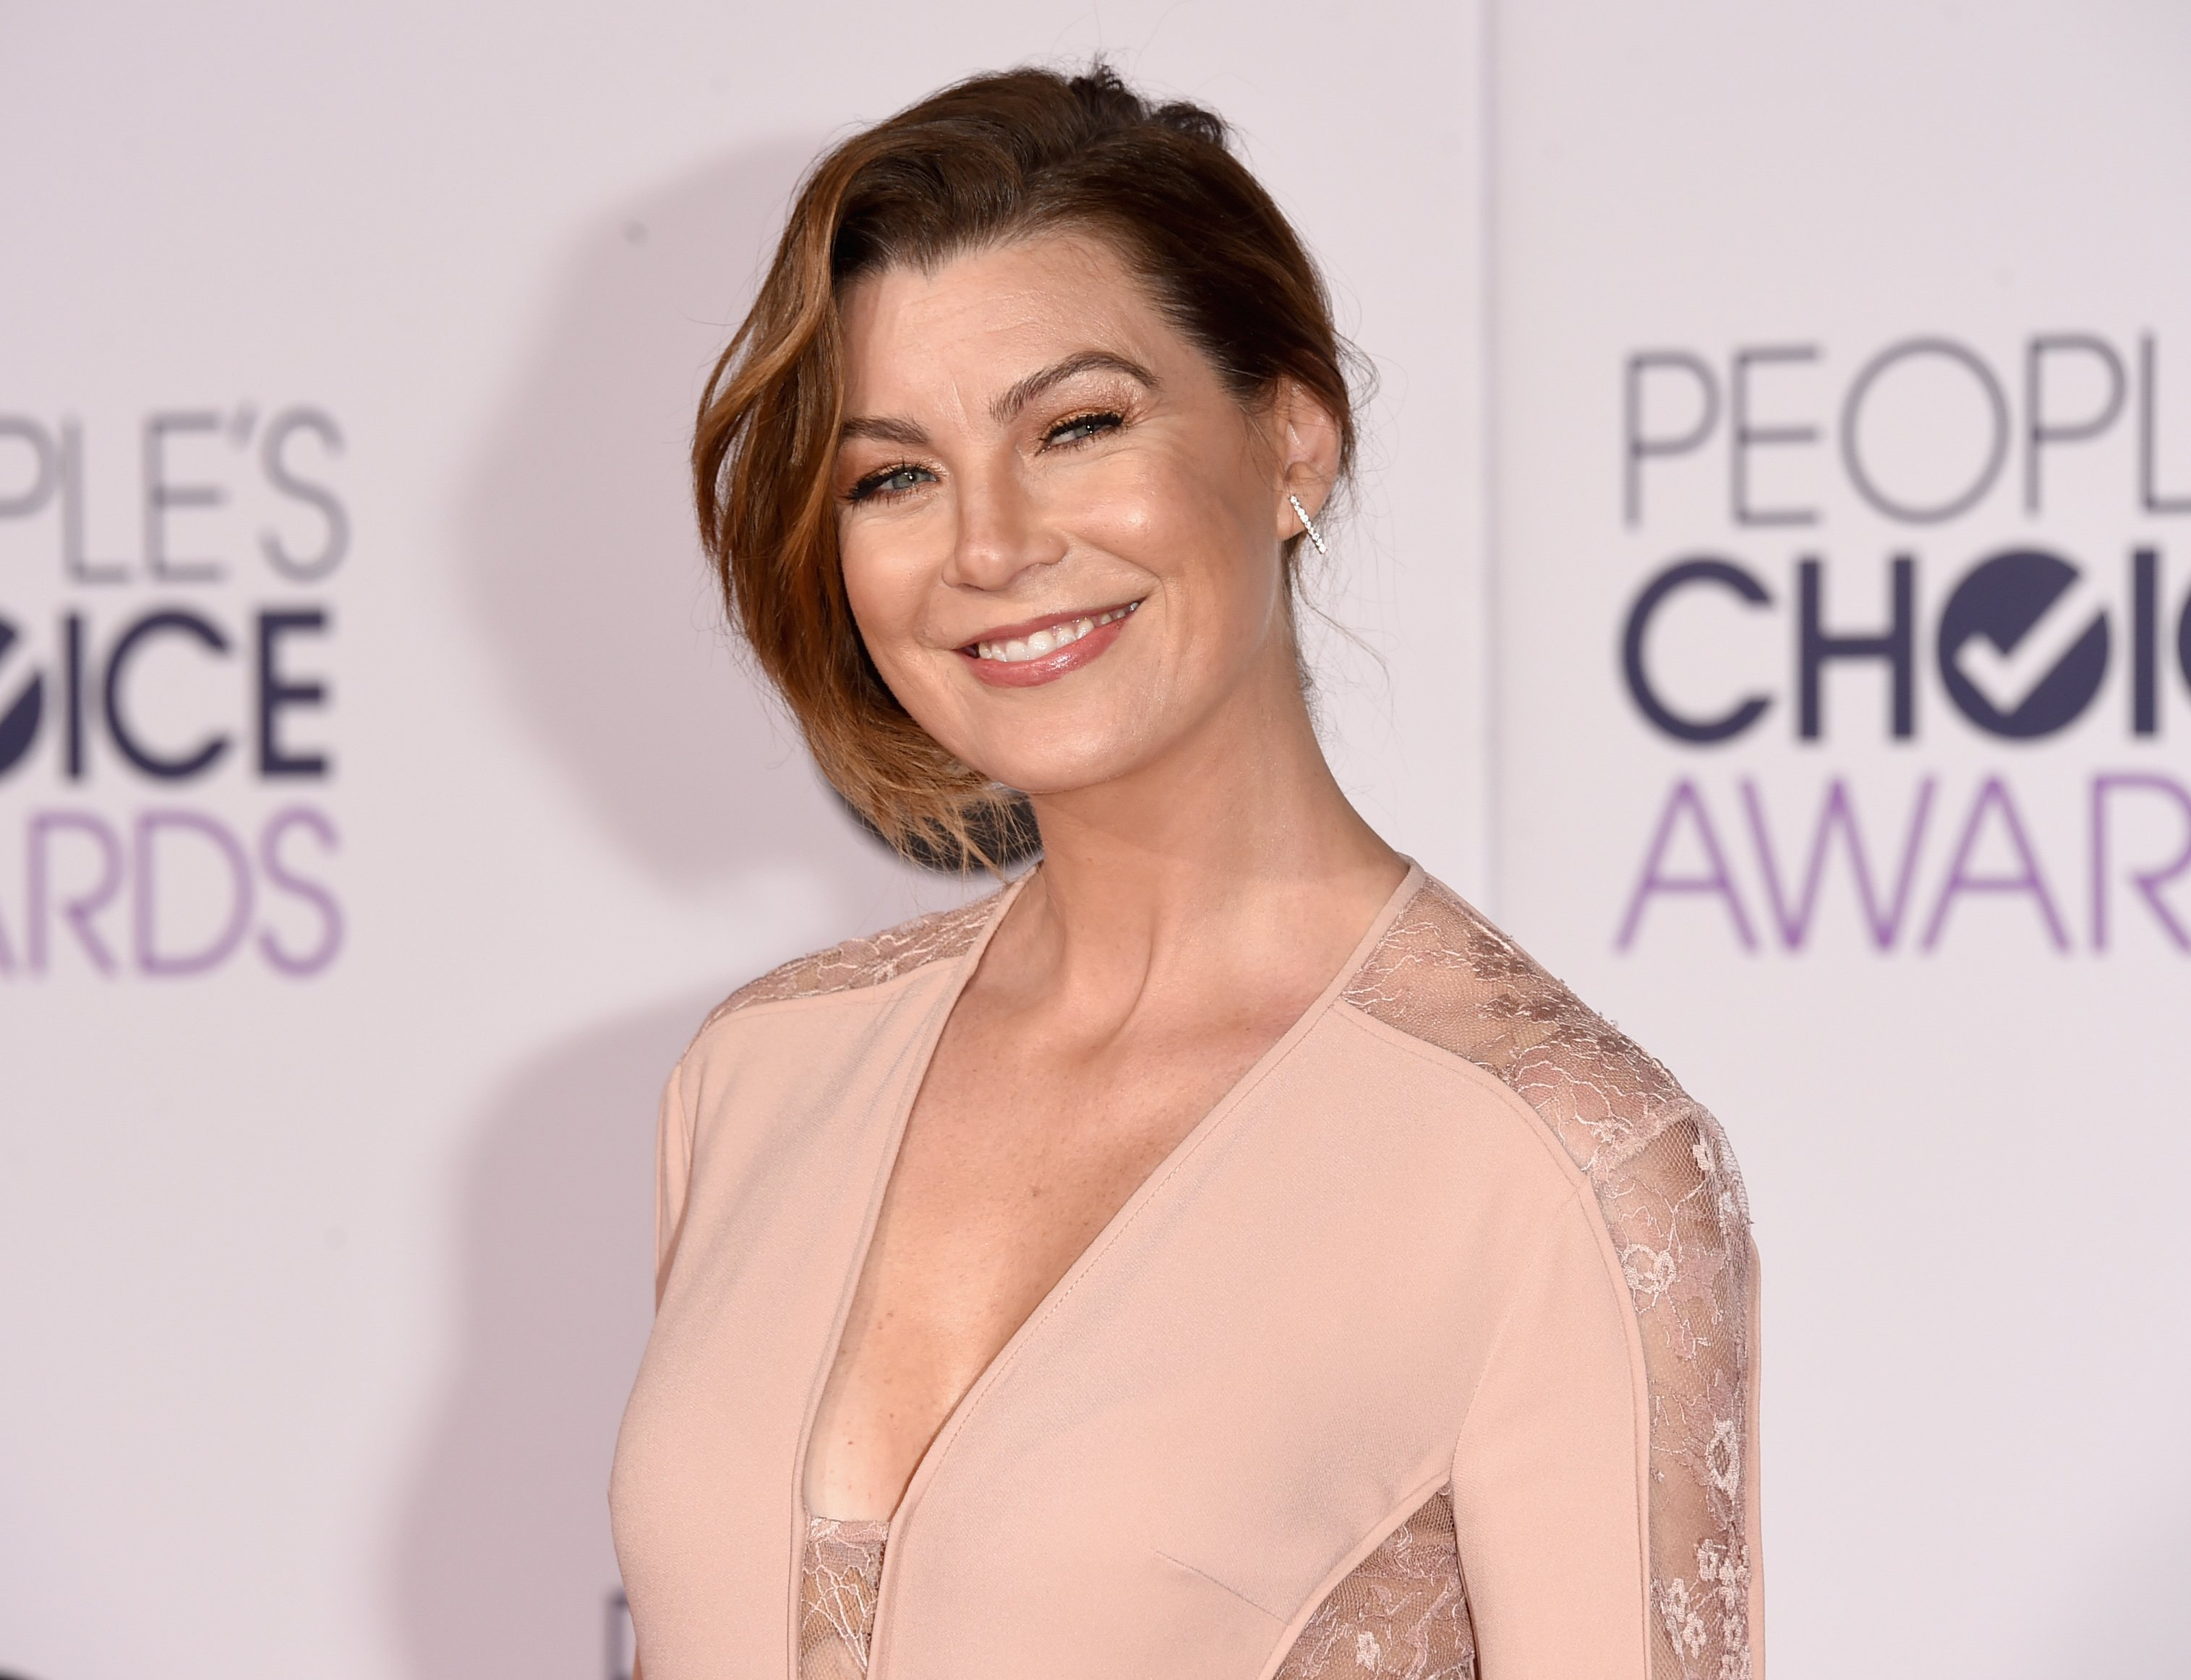 Ellen Pompeo nimmt an den 41. jährlichen People's Choice Awards im Nokia Theatre LA Live am 7. Januar 2015 in Los Angeles, Kalifornien teil. | Quelle: Getty Images